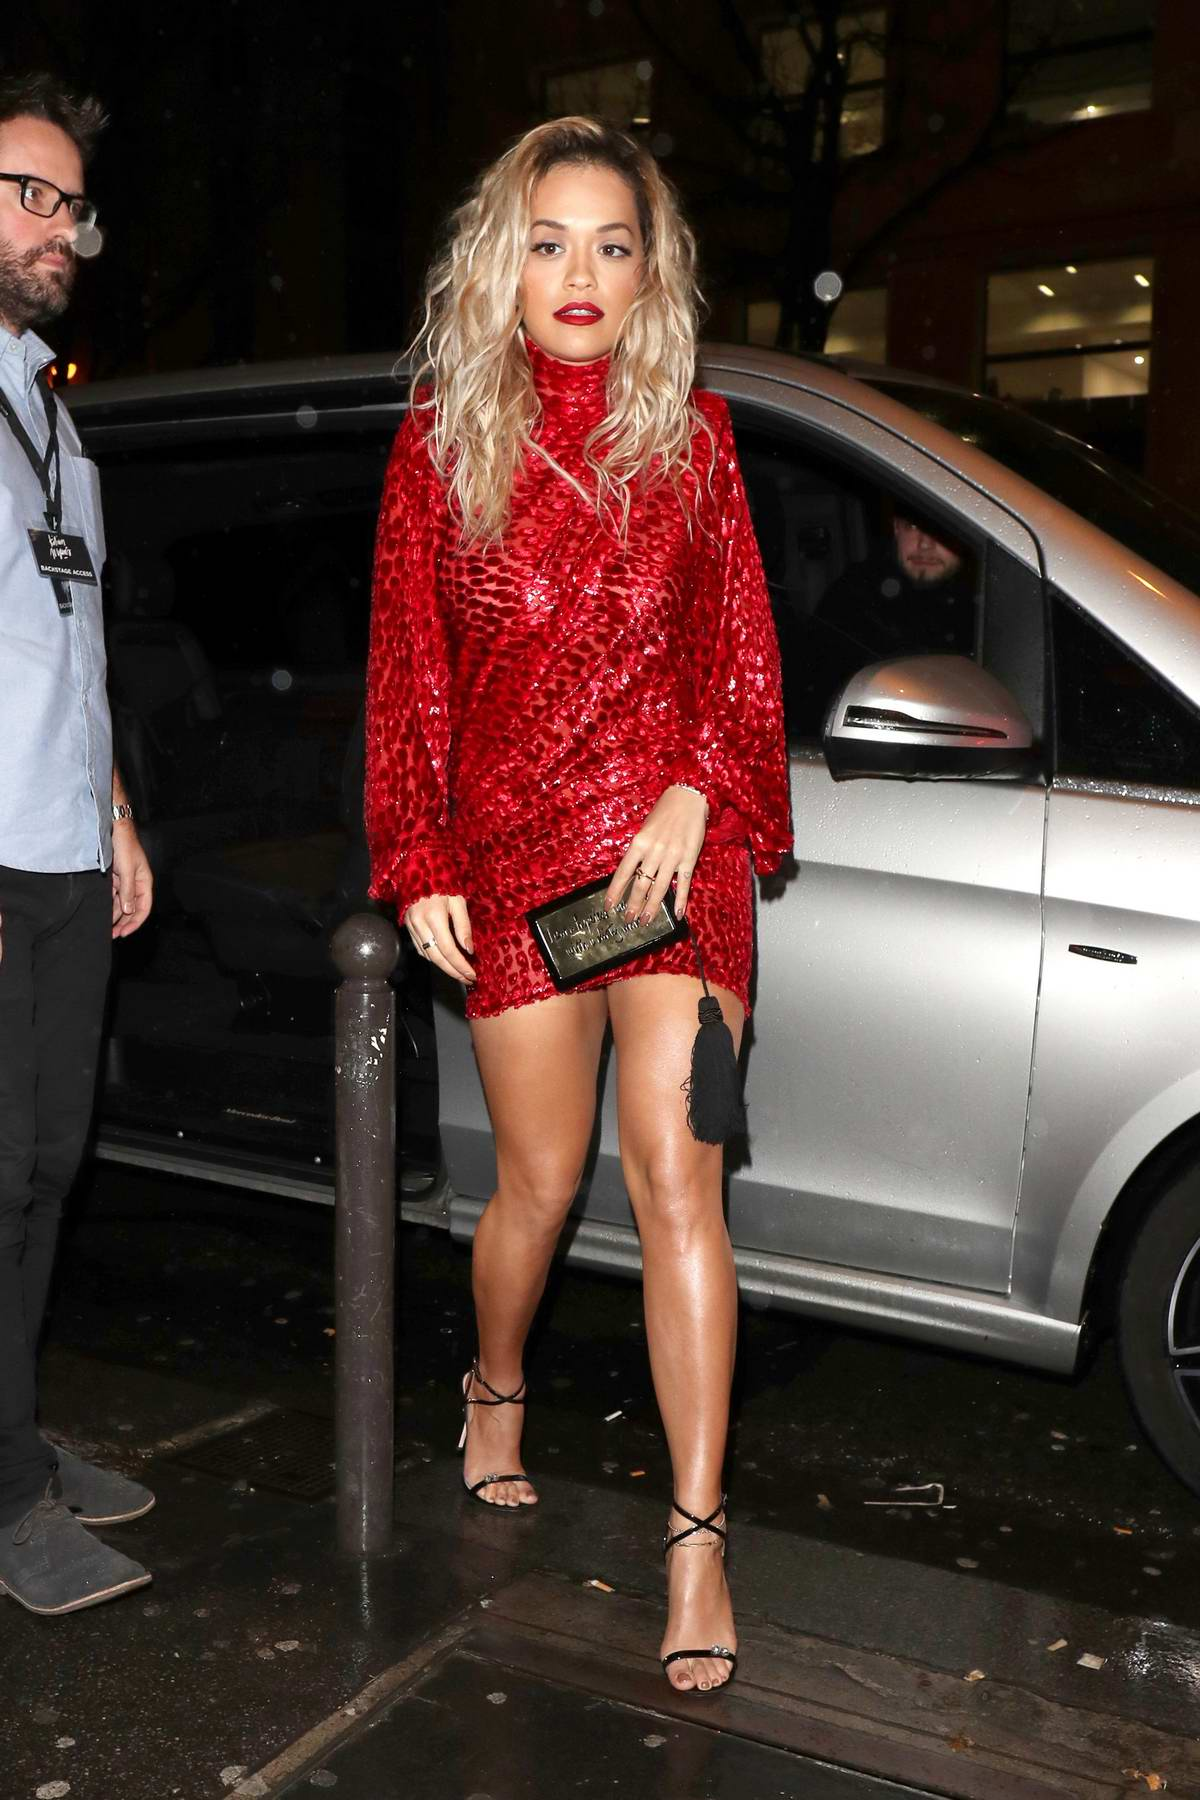 Rita Ora wearing a red short dress as she heads out in Paris, France